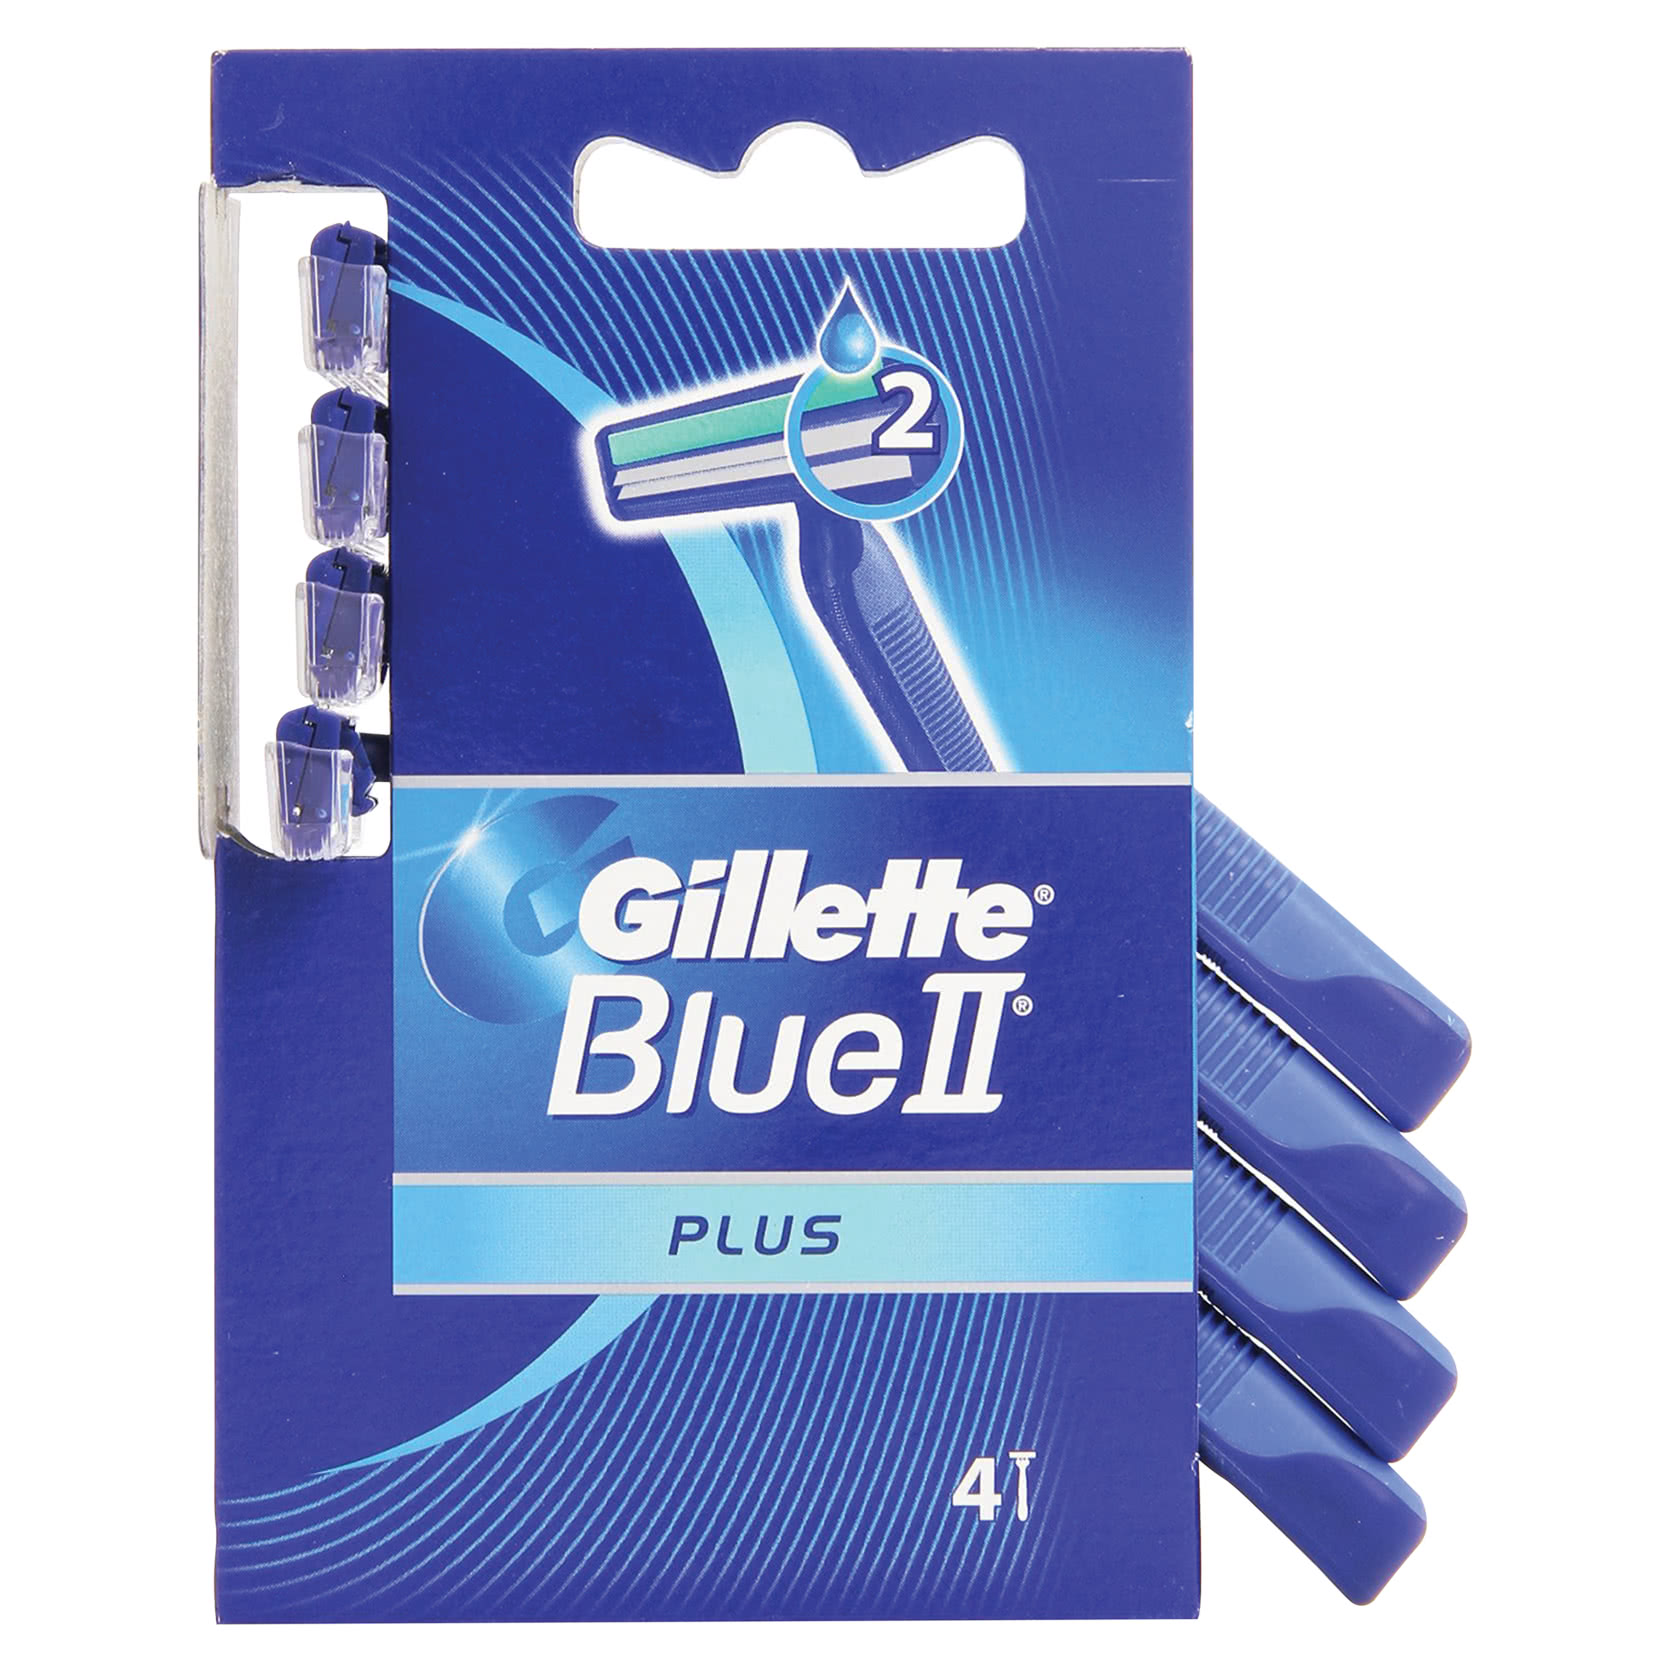 GILLETTE BLUE II USA E GETTA PLUS PZ.4